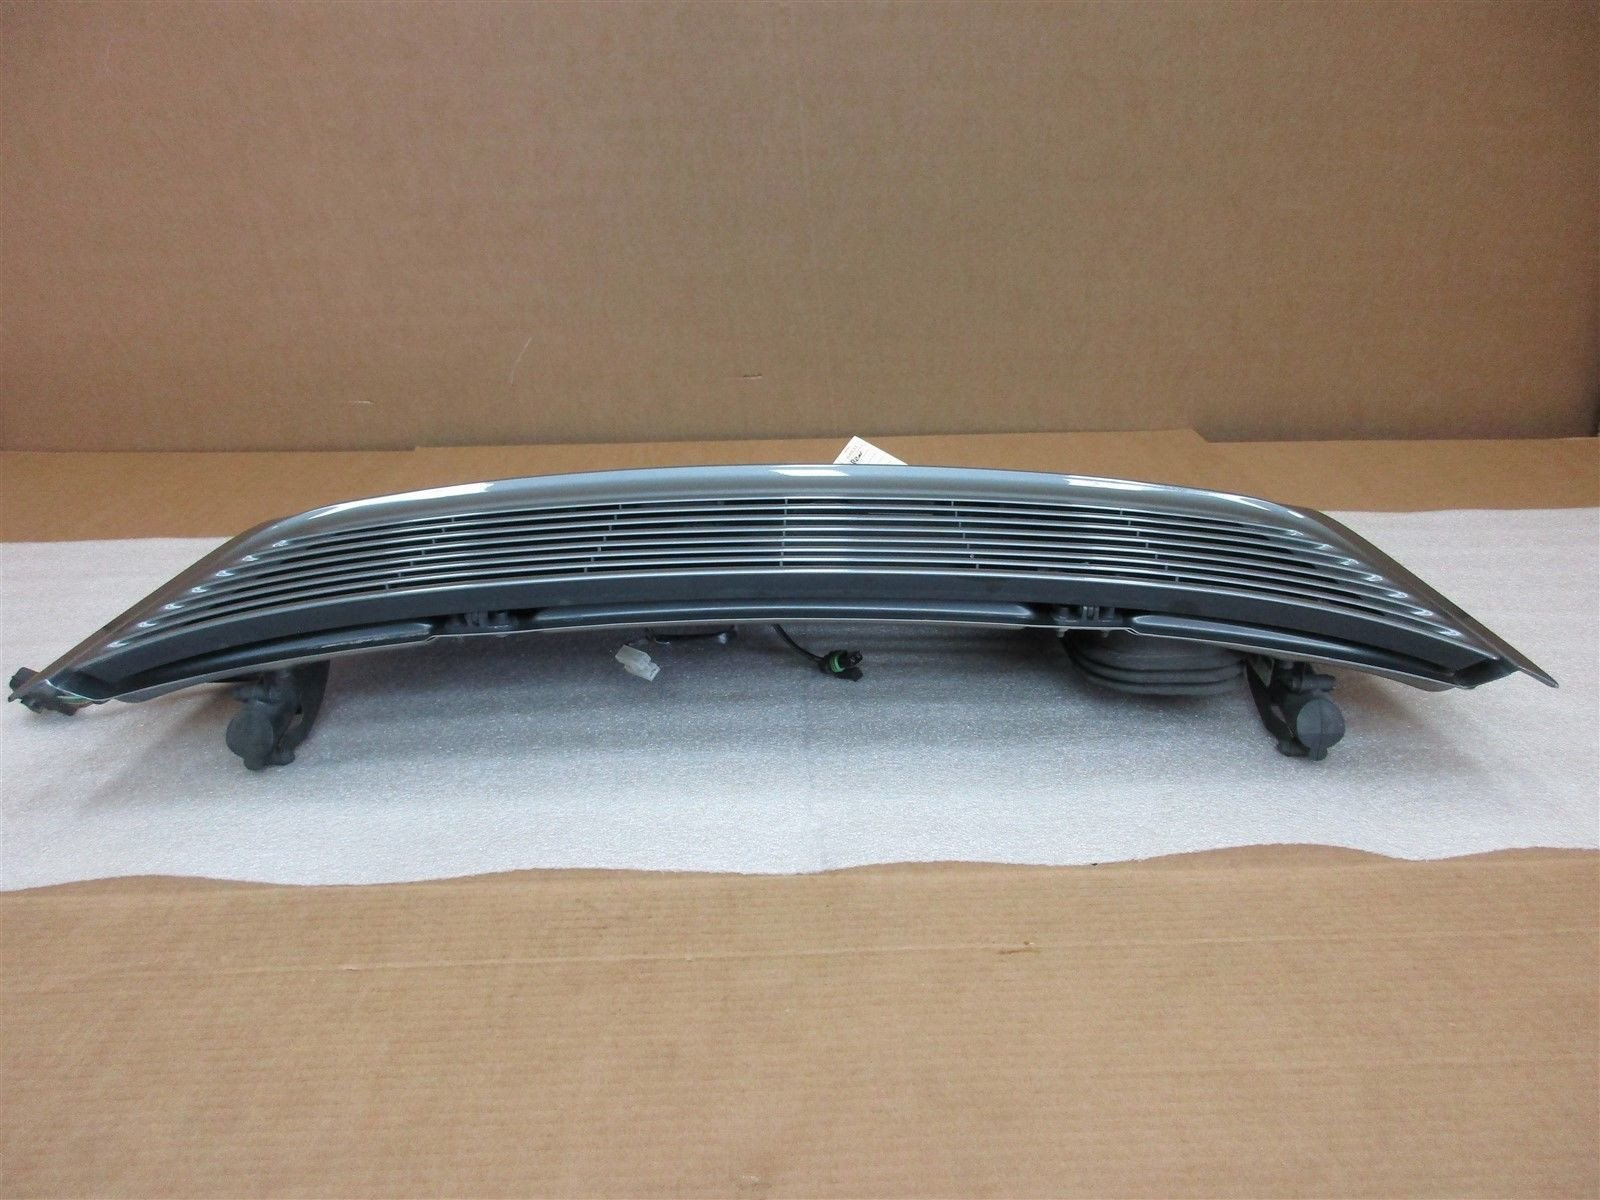 02 Carrera 911 RWD Porsche 996 Coupe REAR SPOILER TRIM COVER 99651221300 83,396